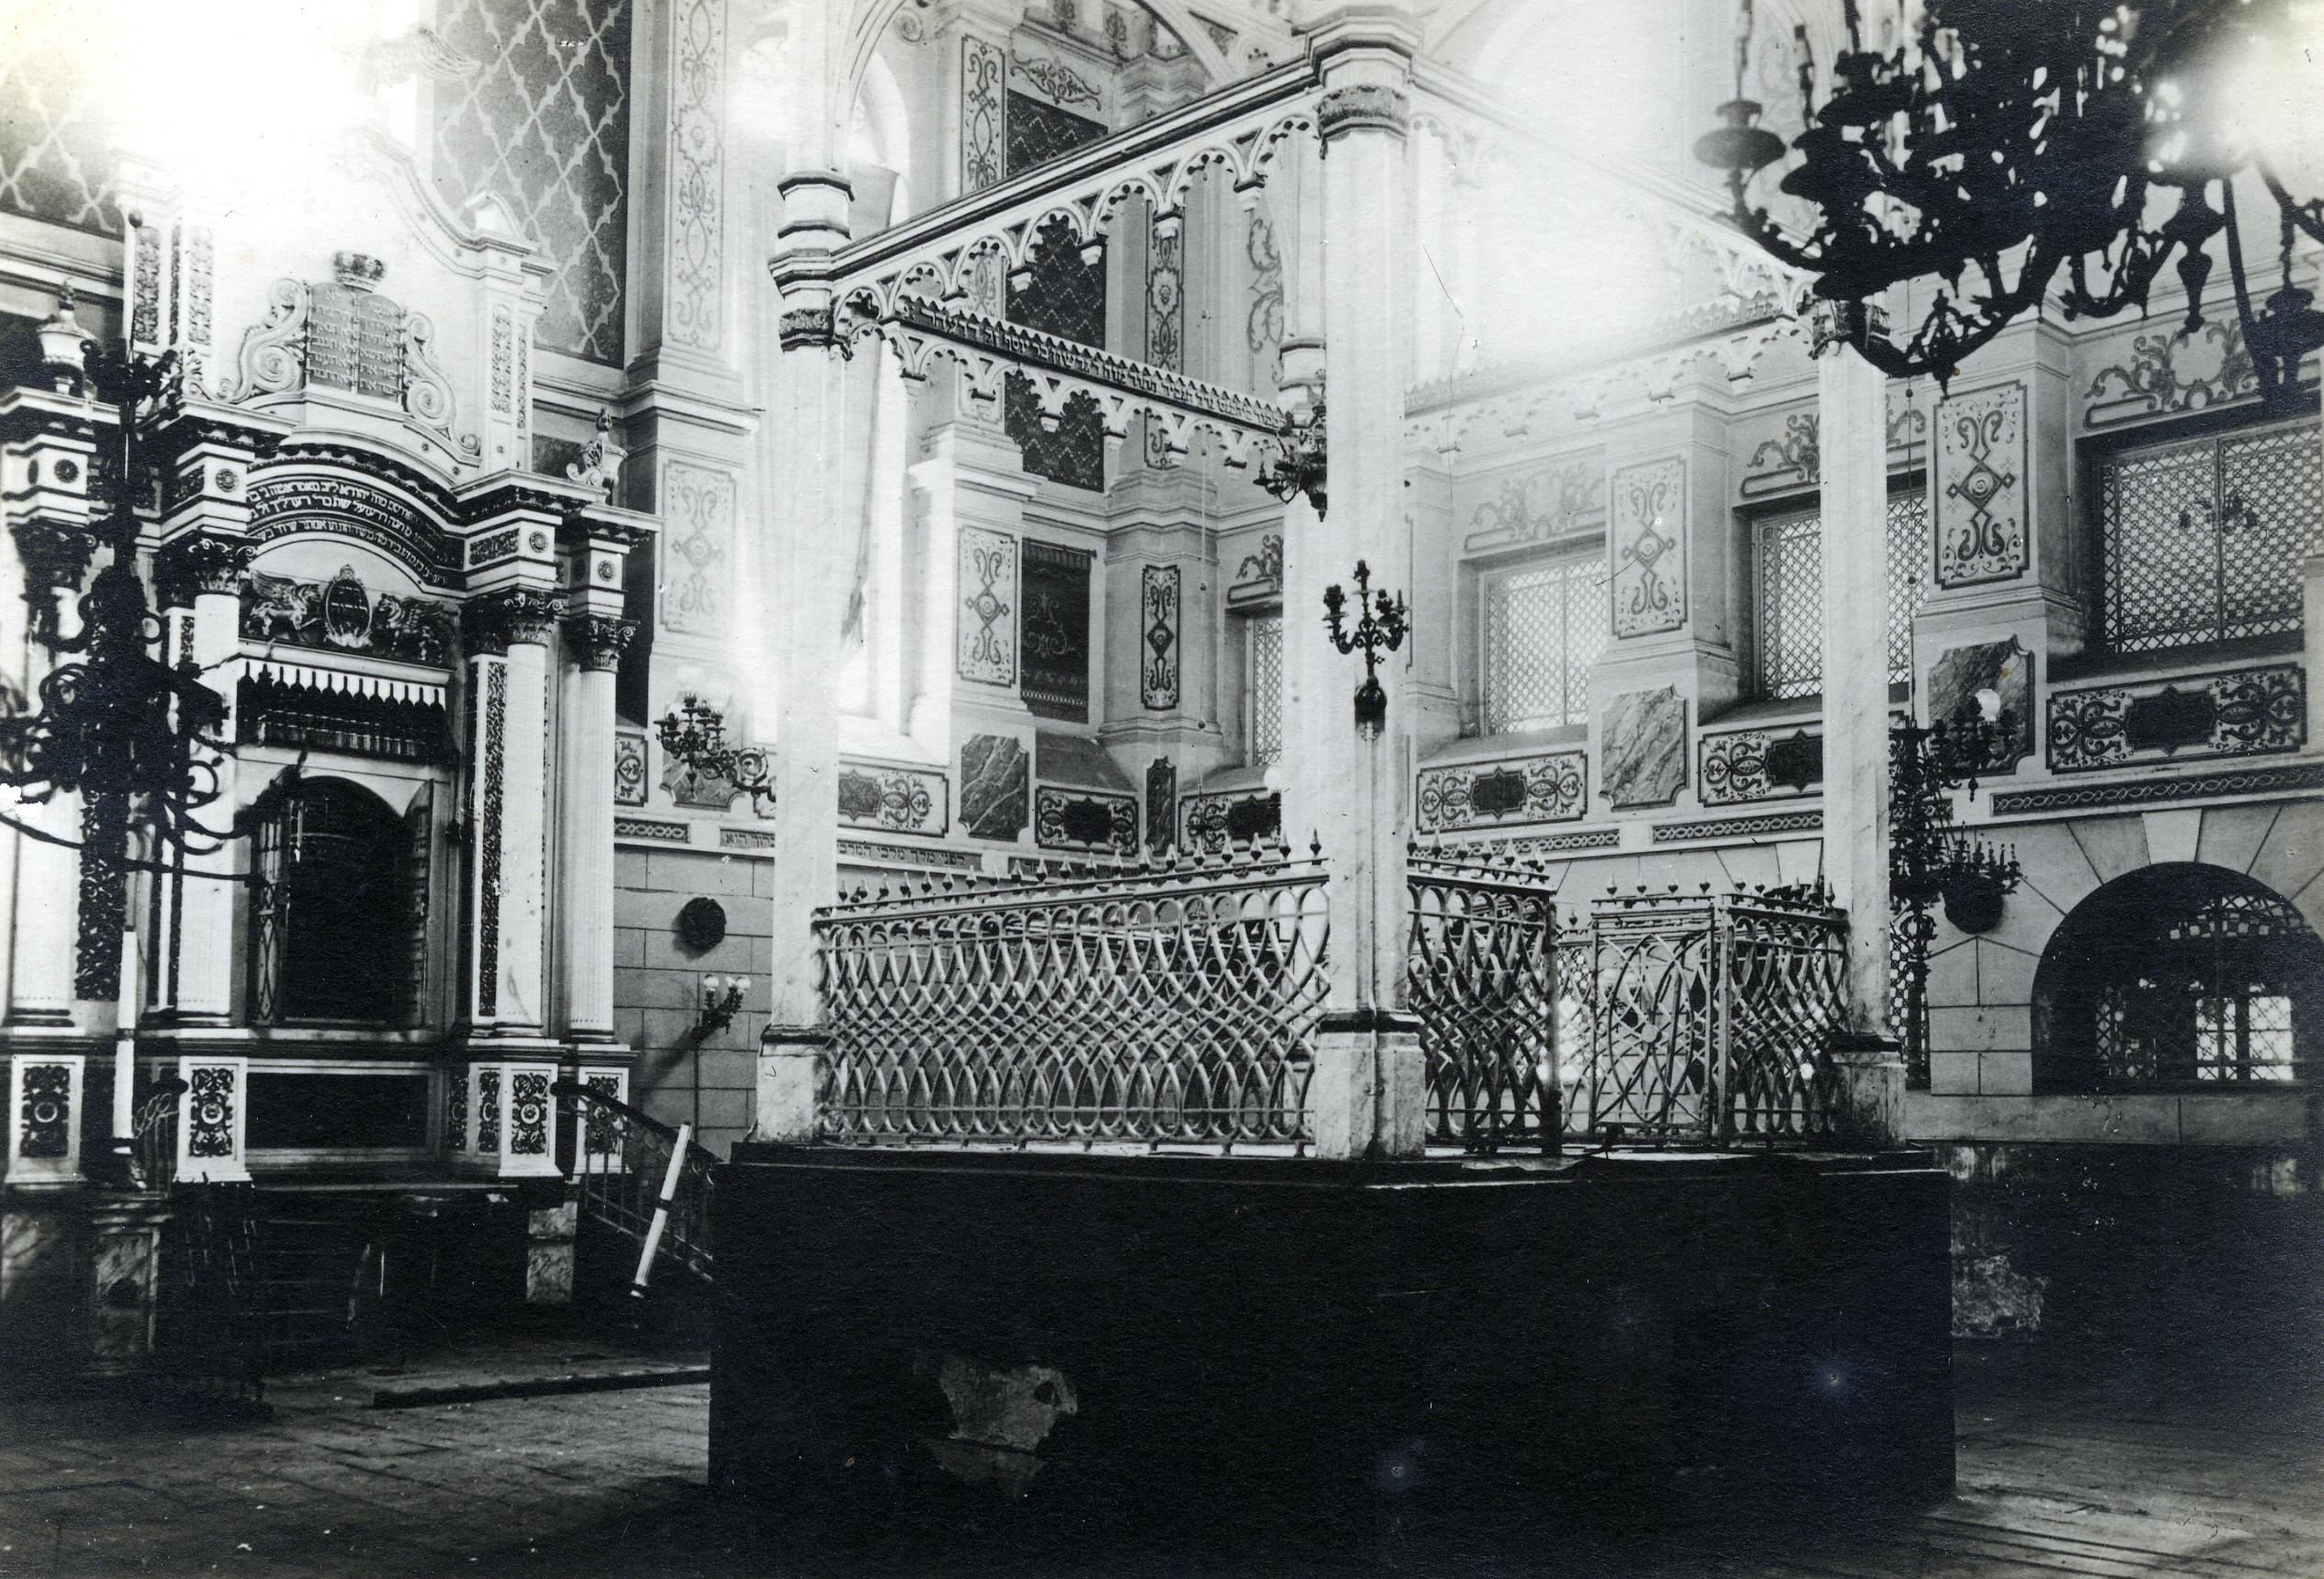 Interior of the Great Synagogue of Kalisz.